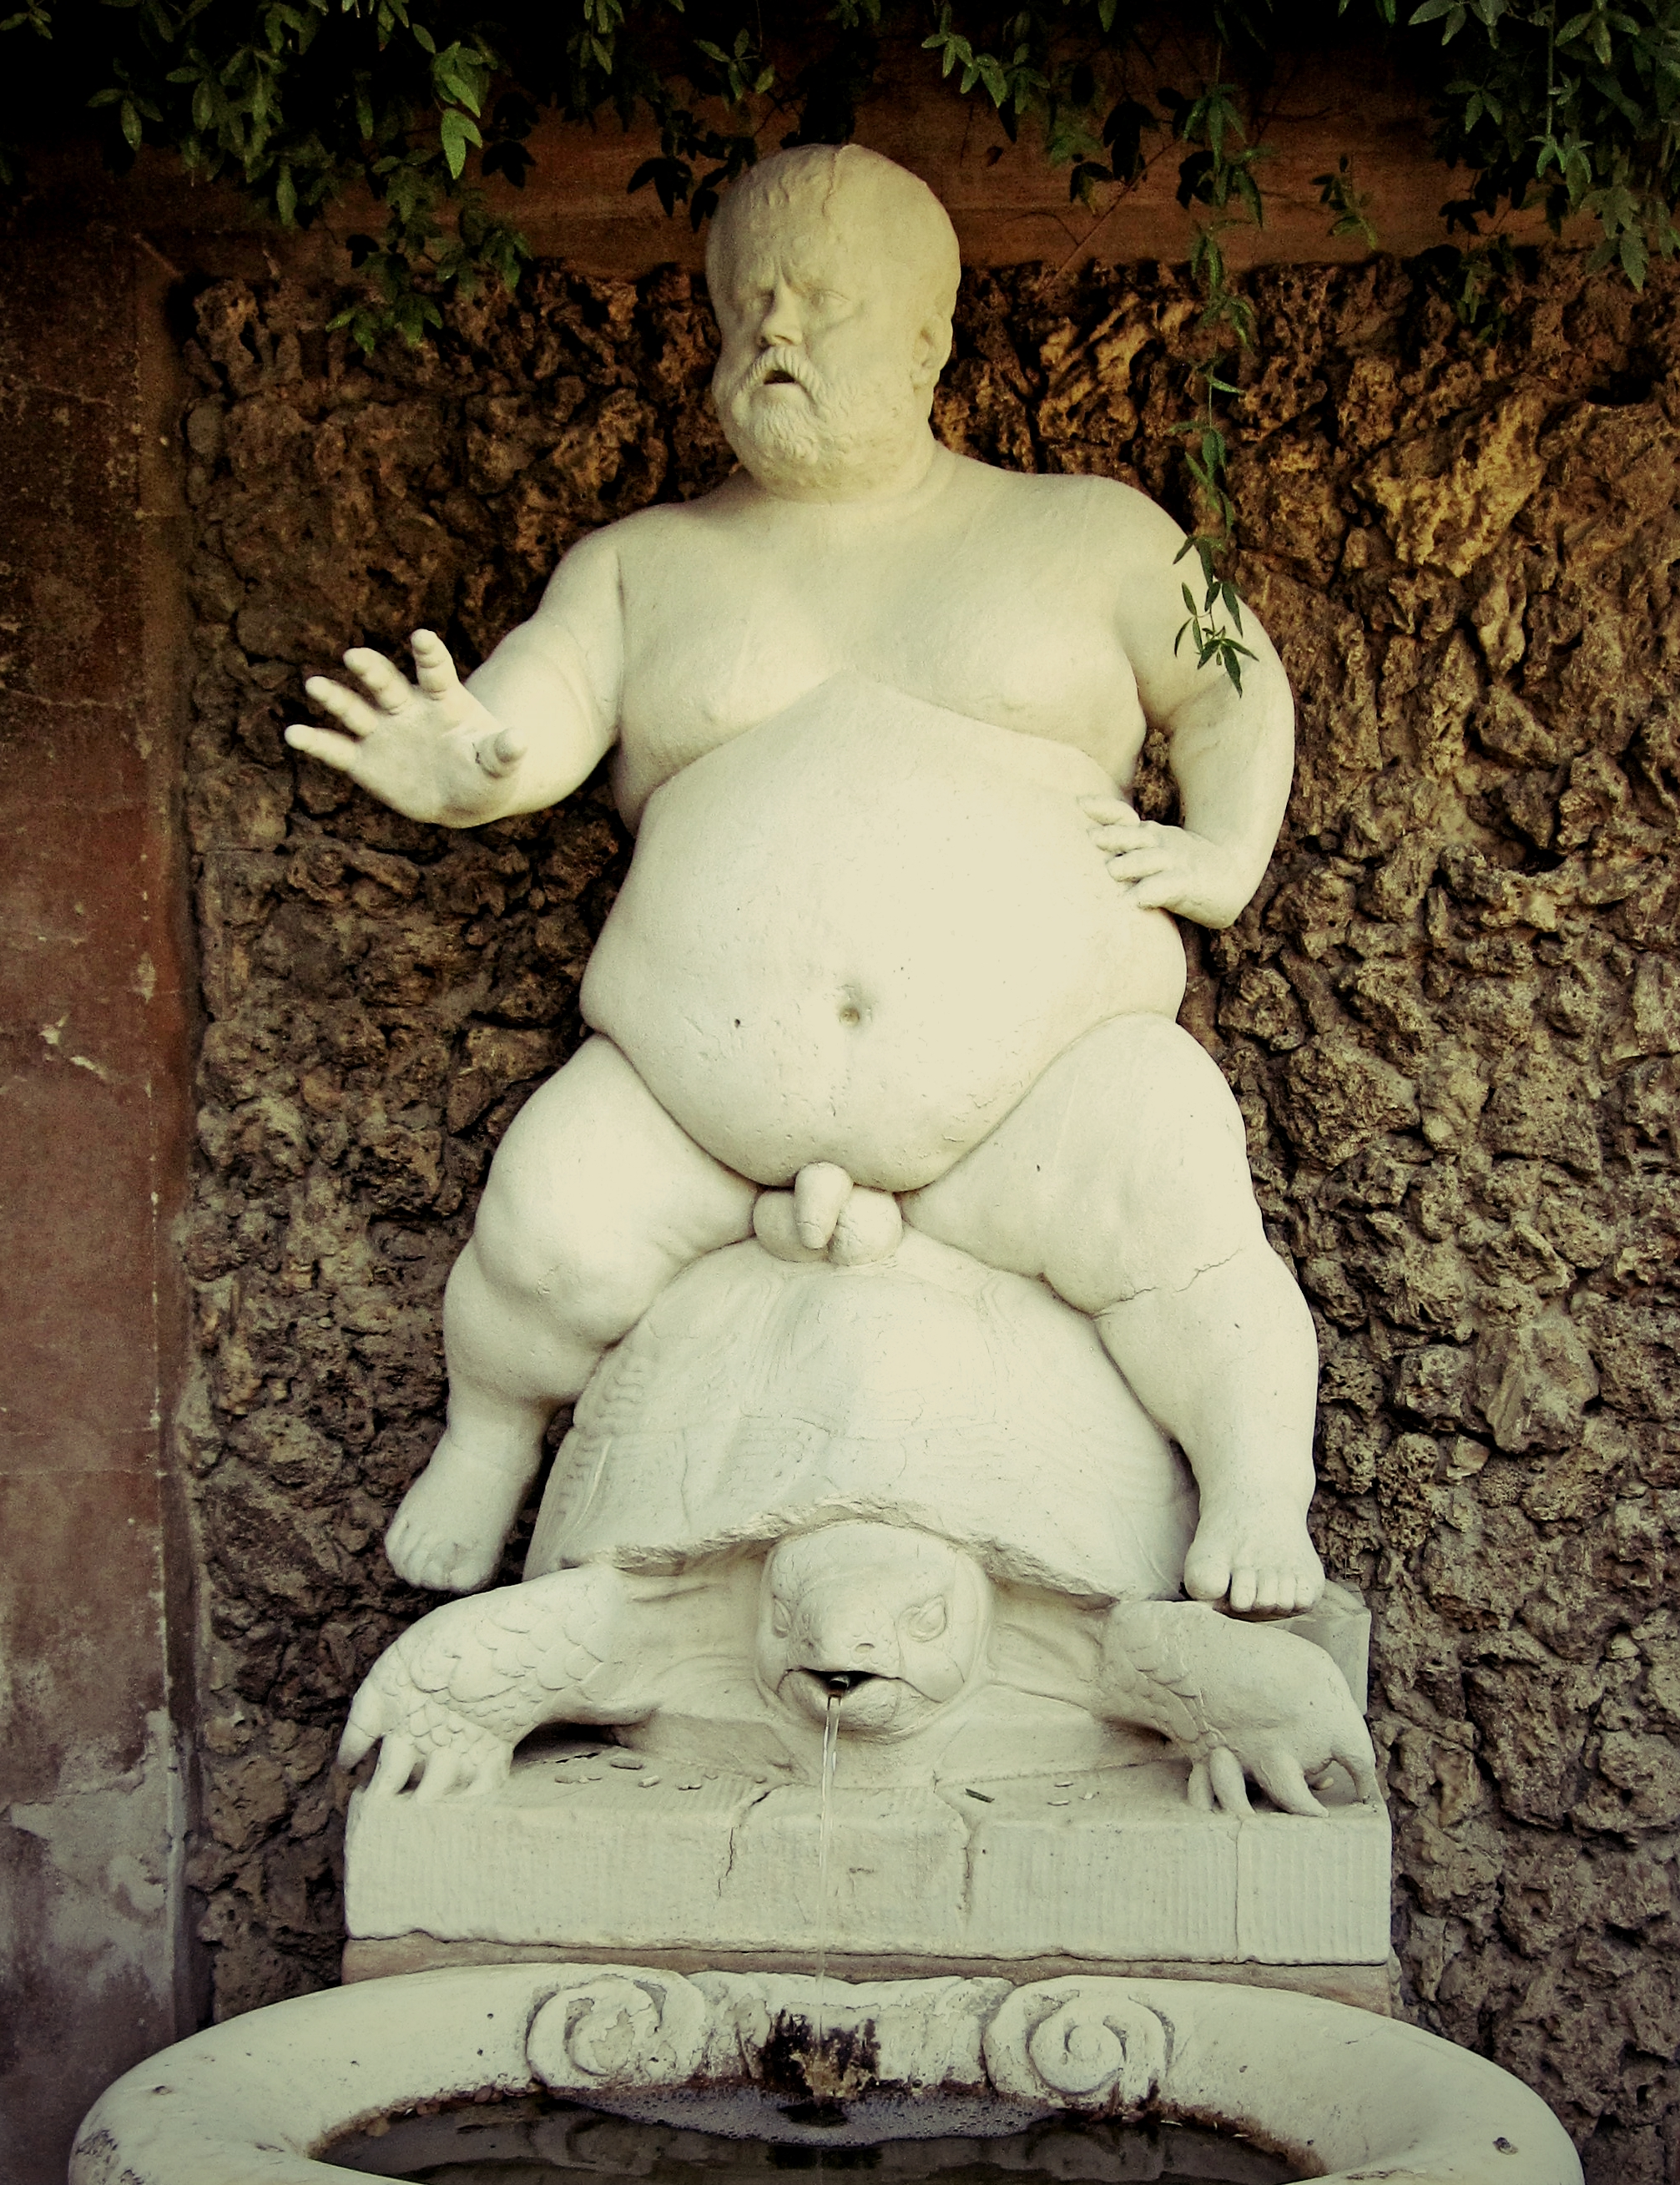 The fountain of Bacchus, in the Boboli Gardens in the grounds of Palazzo Pitti.